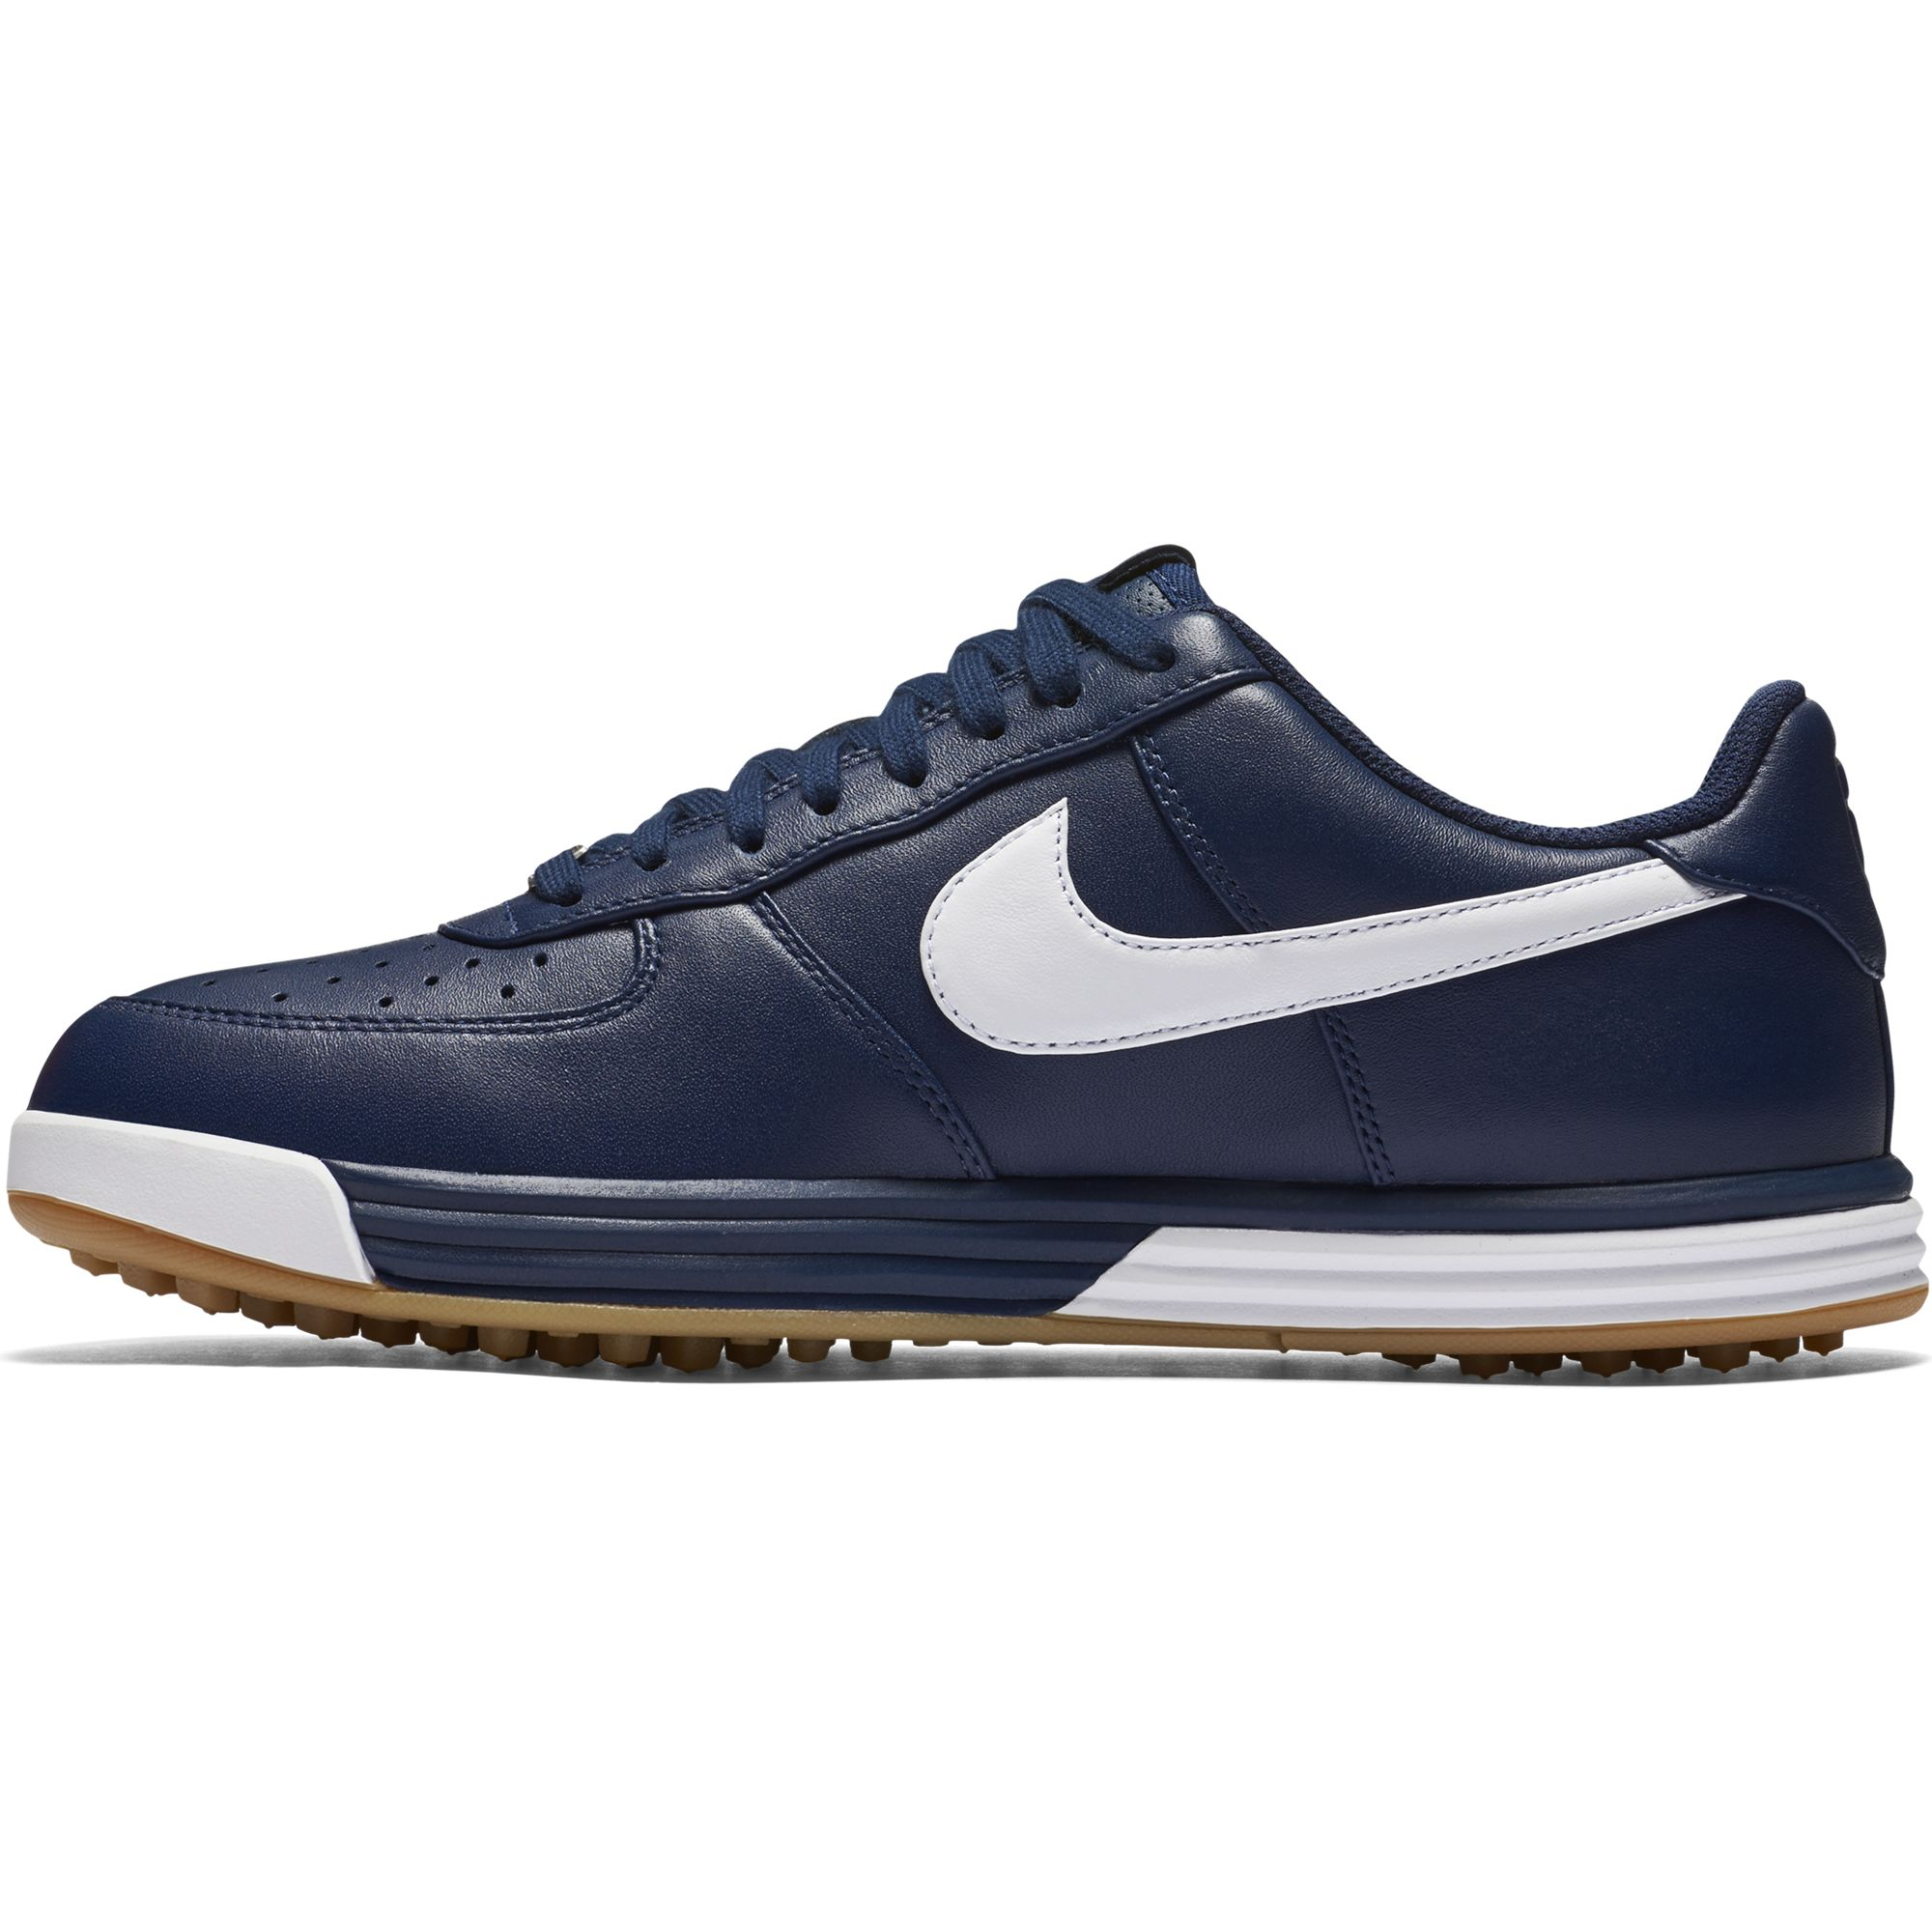 nike lunar force 1 g golf shoes 2016 men 39 s medium 818726. Black Bedroom Furniture Sets. Home Design Ideas